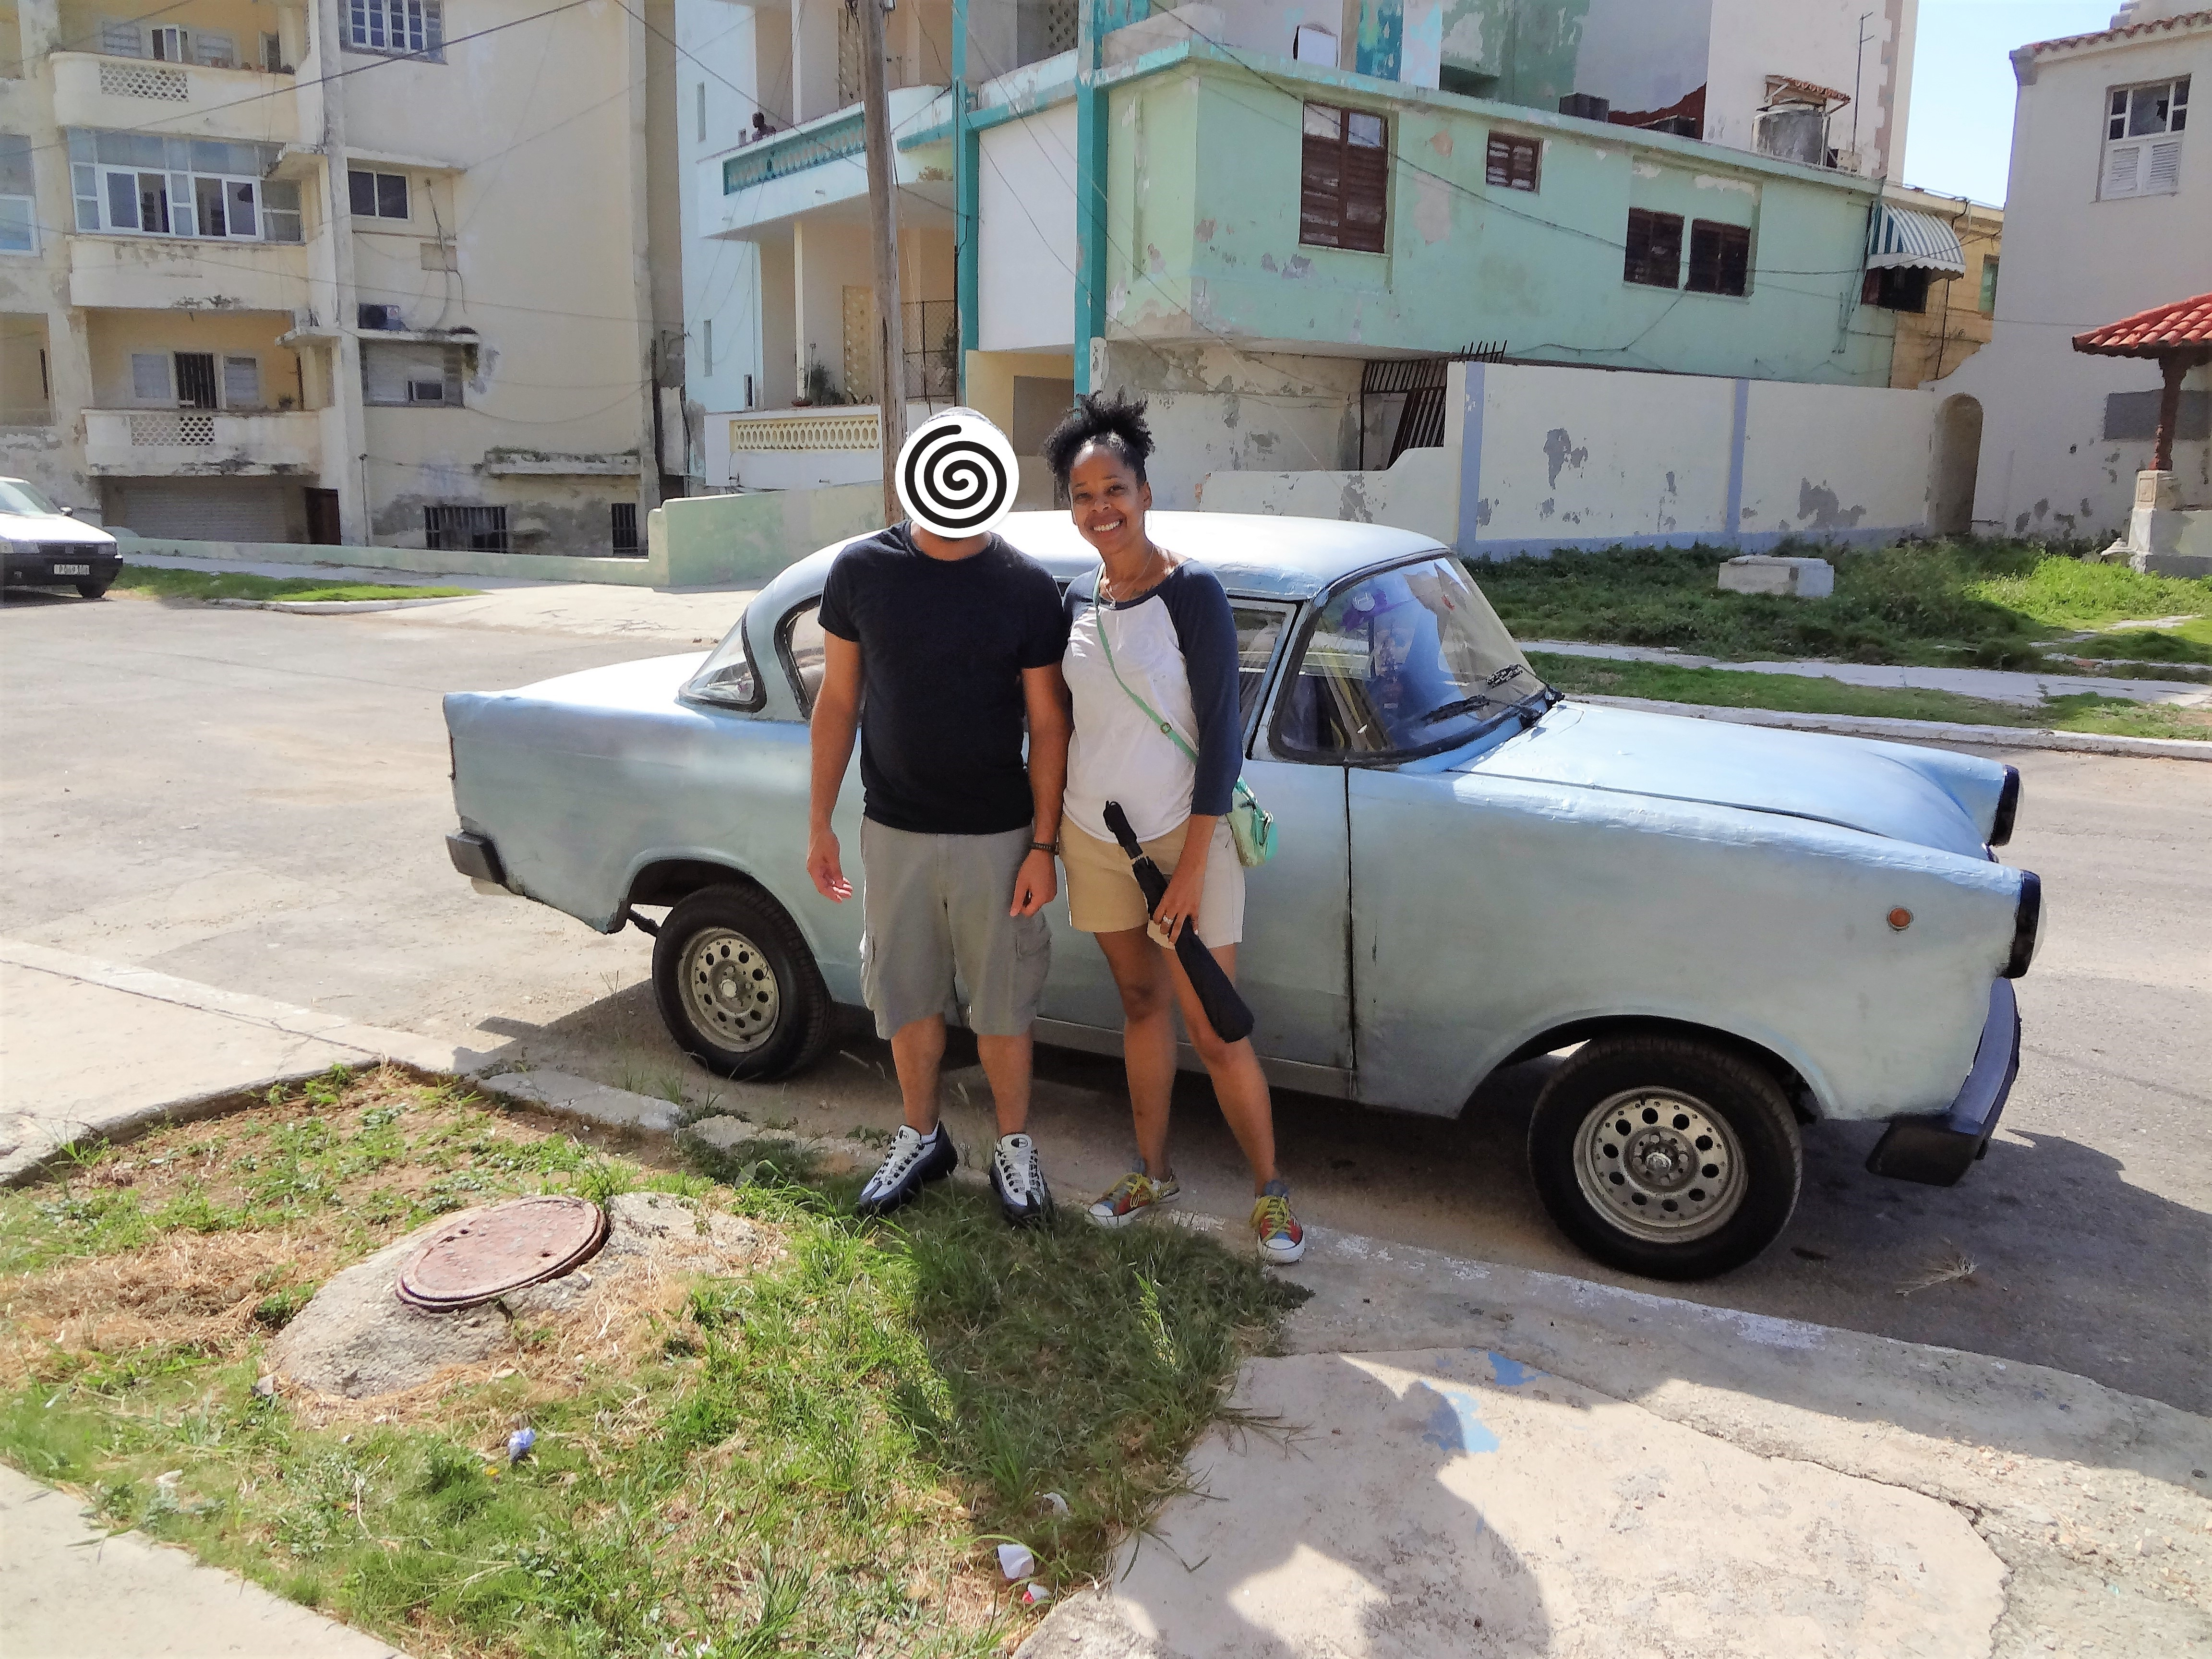 Couple in front of car on street in Cuba